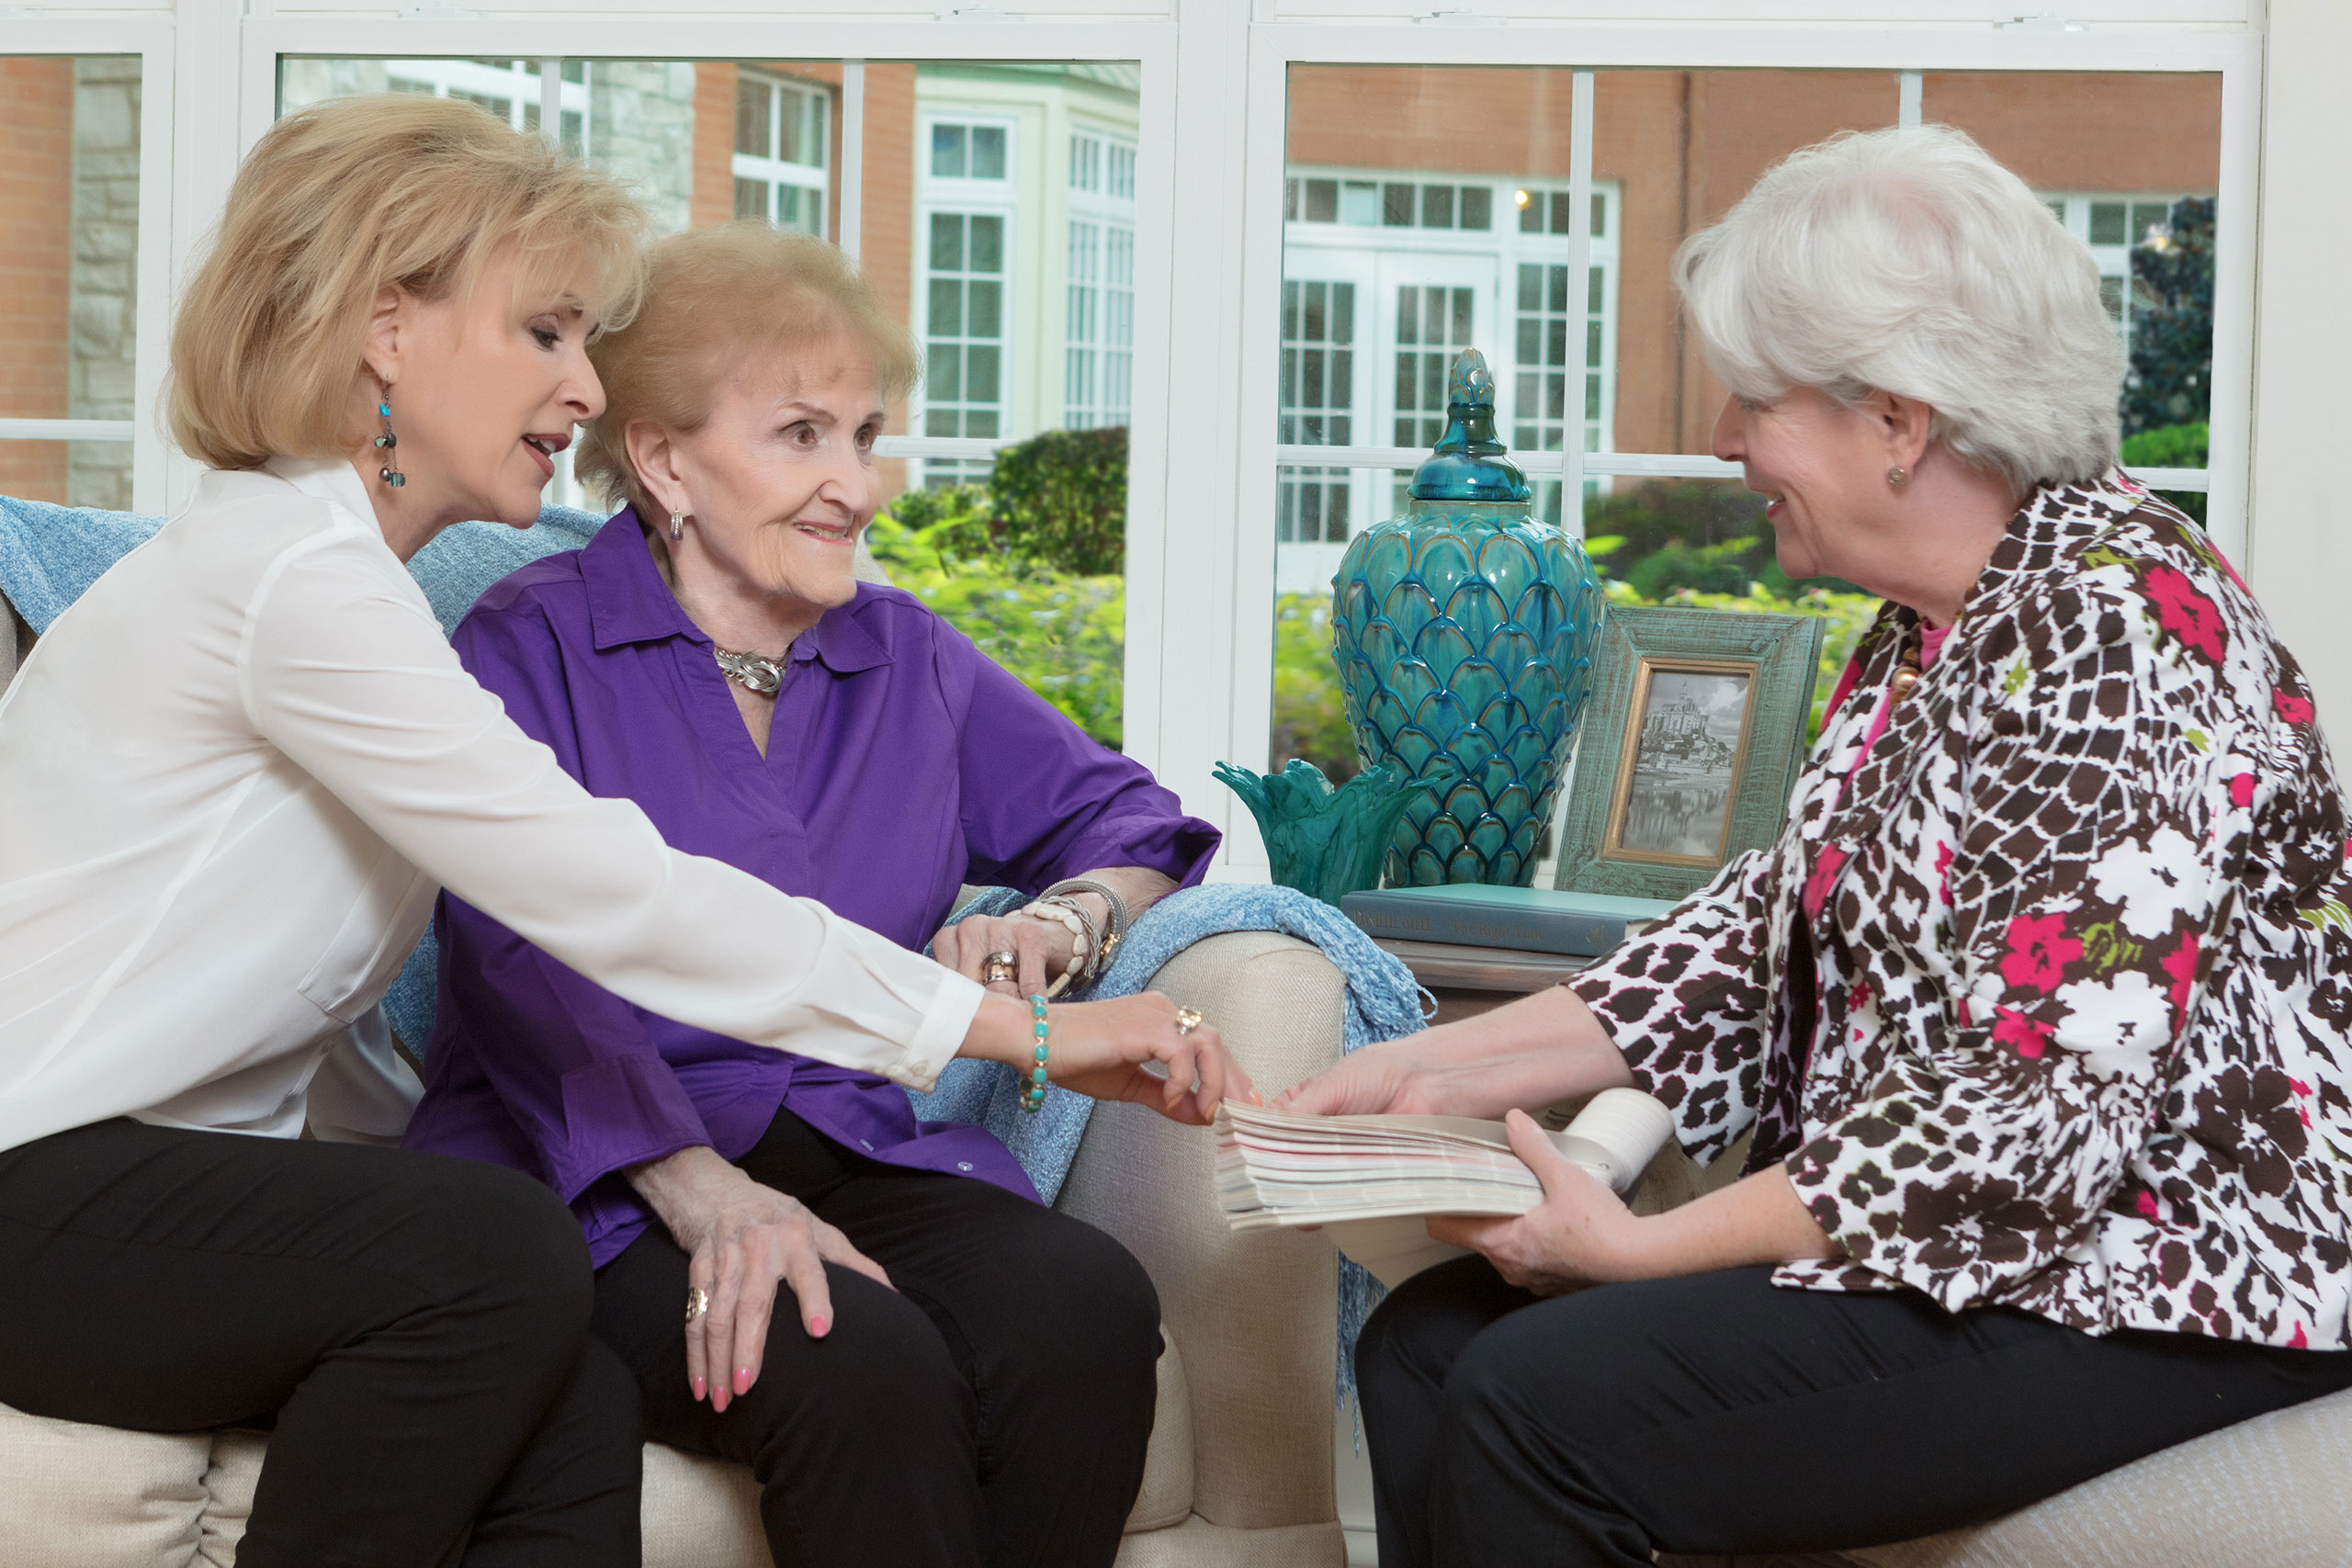 Move-in Coordinator reviewing interior design options with caregiving and resident.